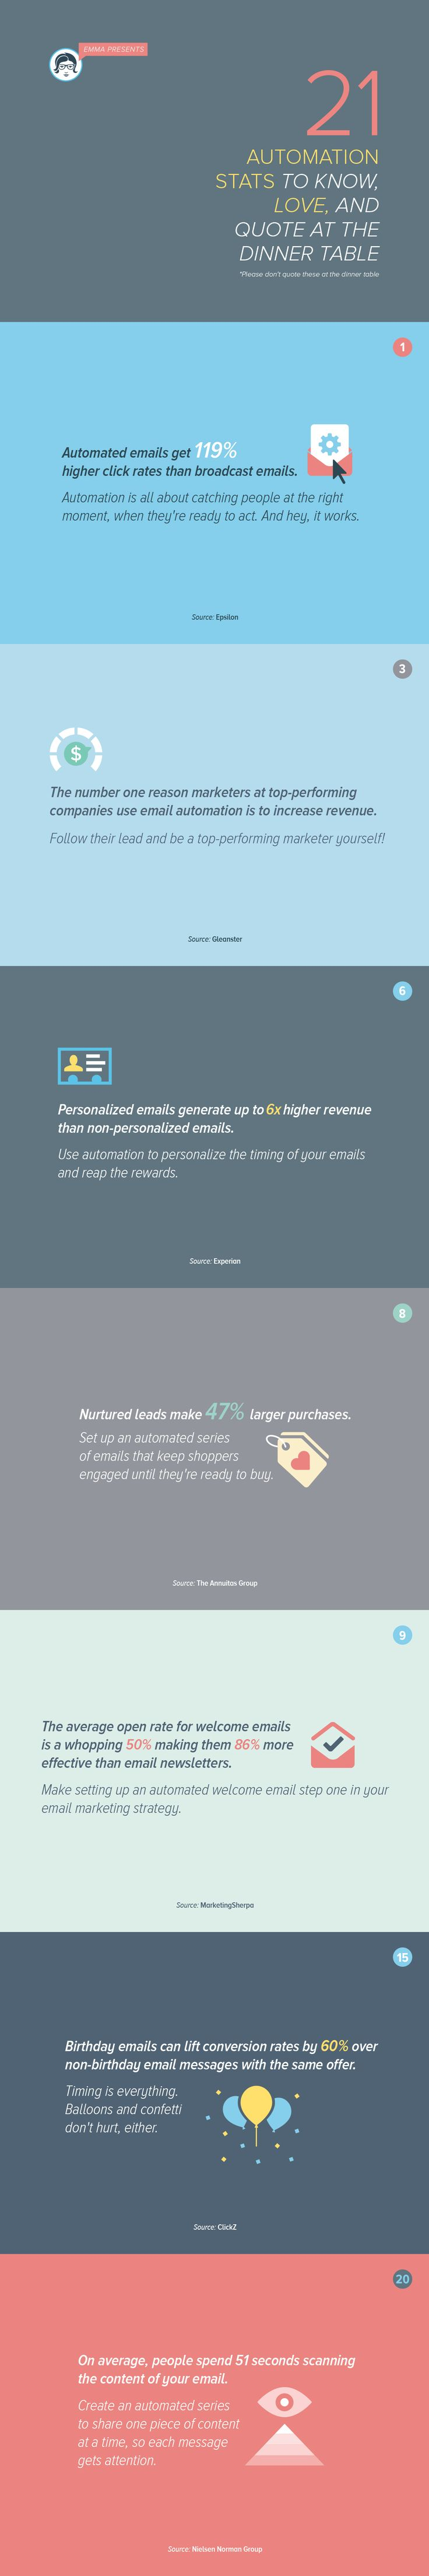 21 Email Automation Stats to Geek Out to in 2015 [Infographic] This is why you MUST look into and launch Automated Email Marketing in 2015